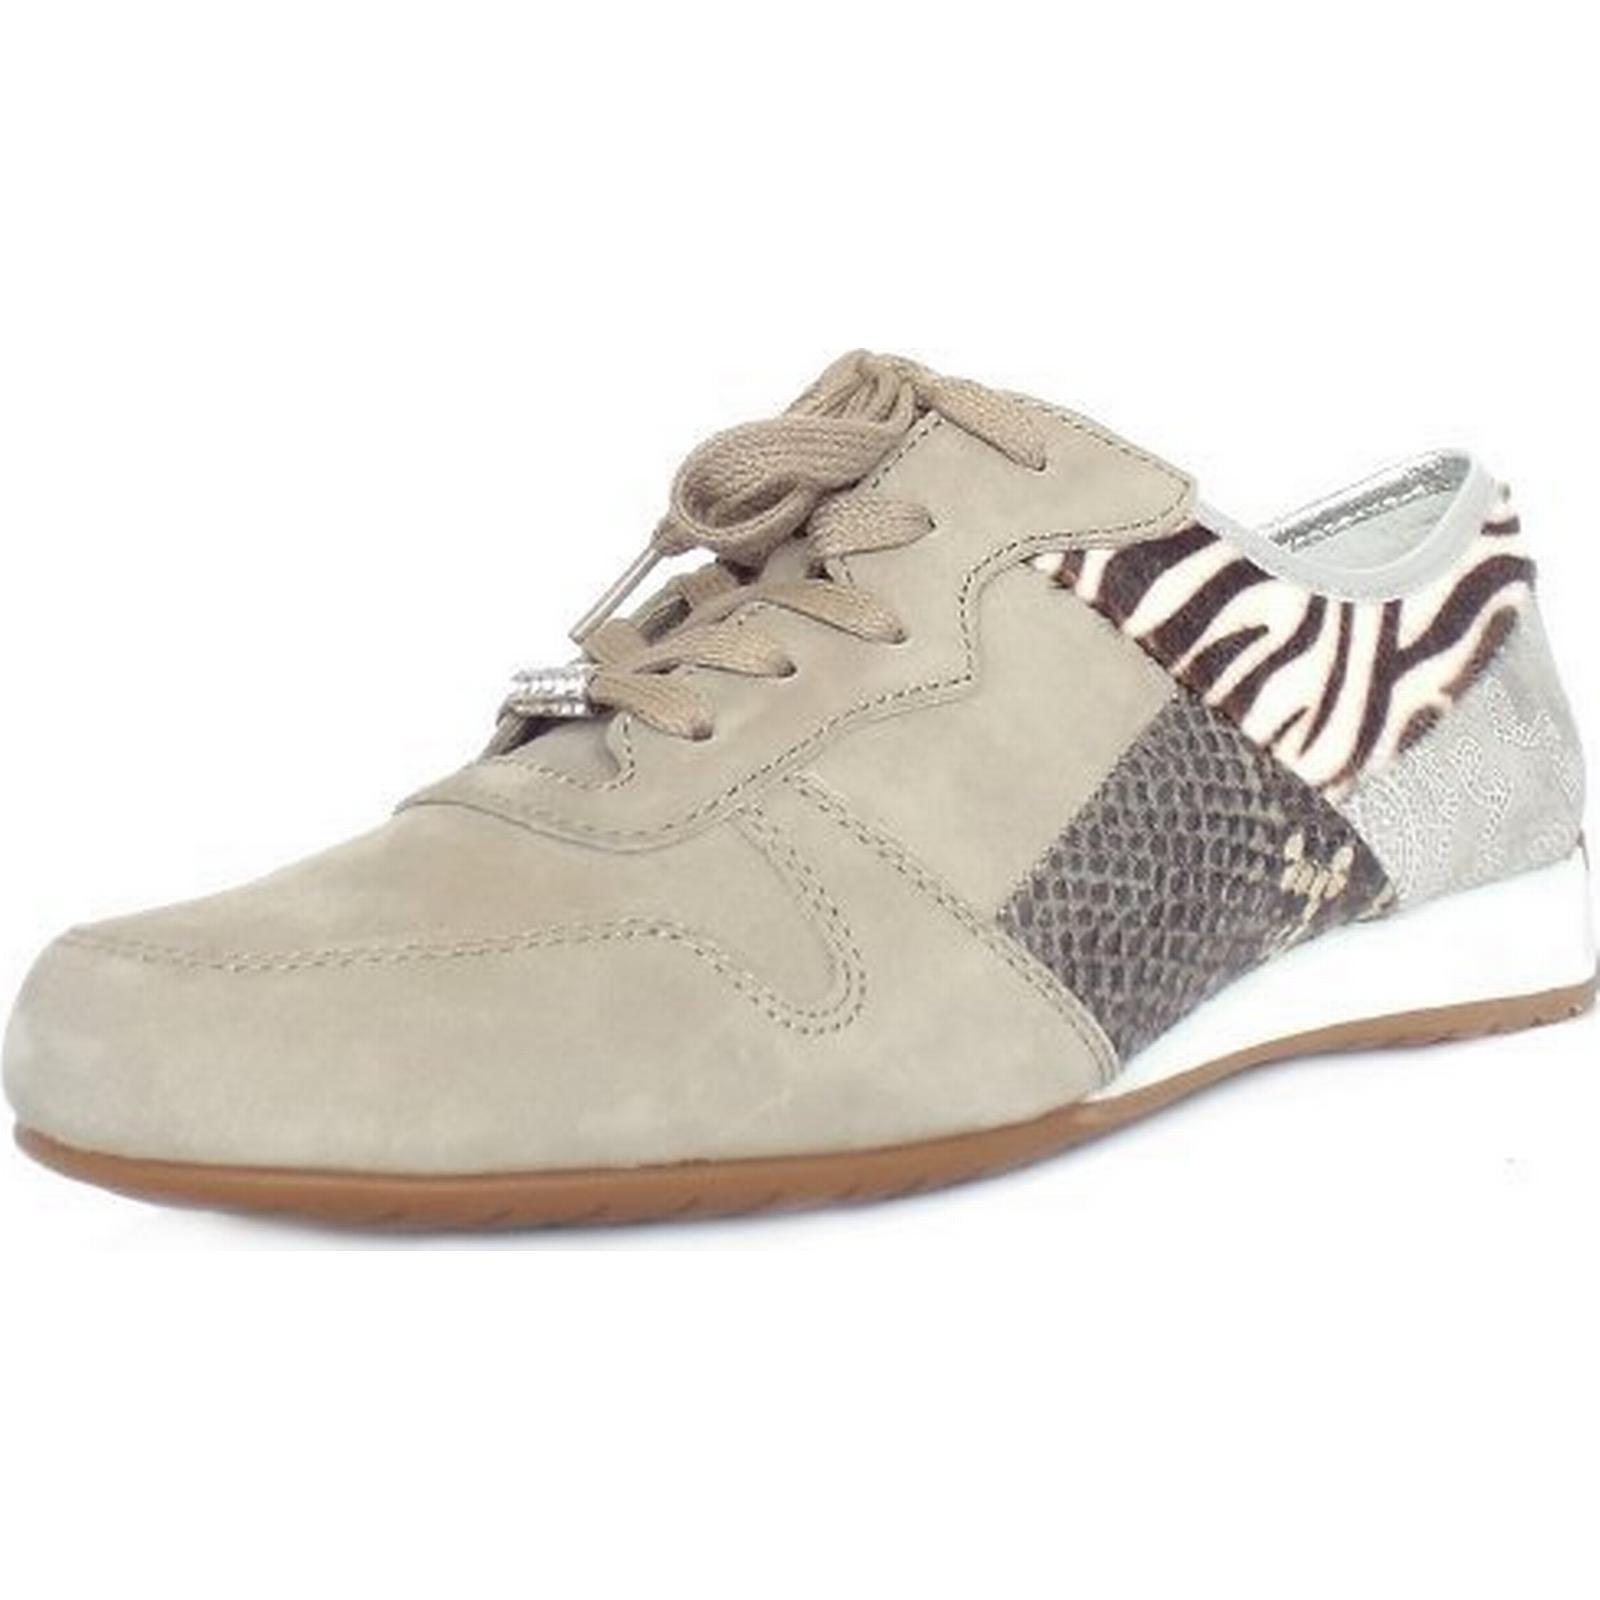 Gabor HADDAWAY GABOR GABOR HADDAWAY LADIES SHOES 26 355 33 Size: 3.5, Colour: TAUPE 7a2aeb